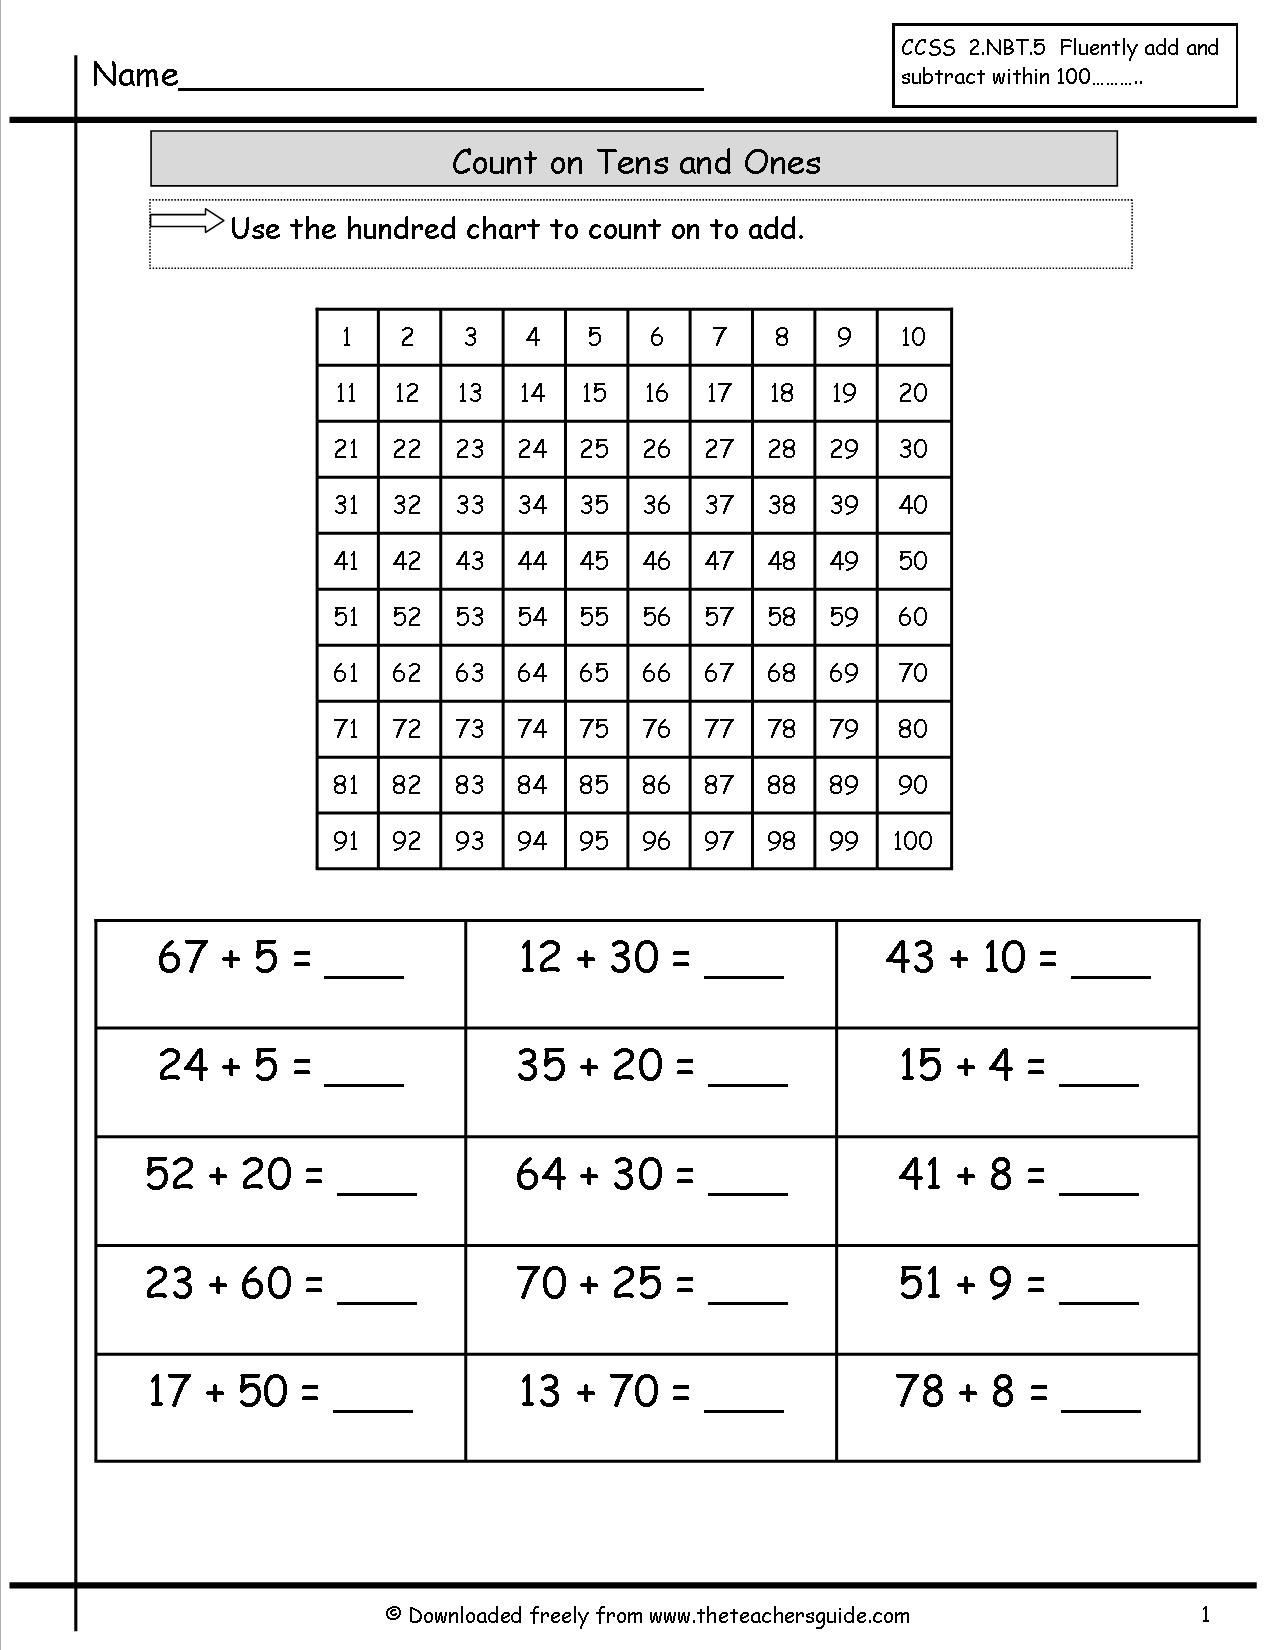 Counting In 10s Worksheet Counting On Ones and Tens Worksheet